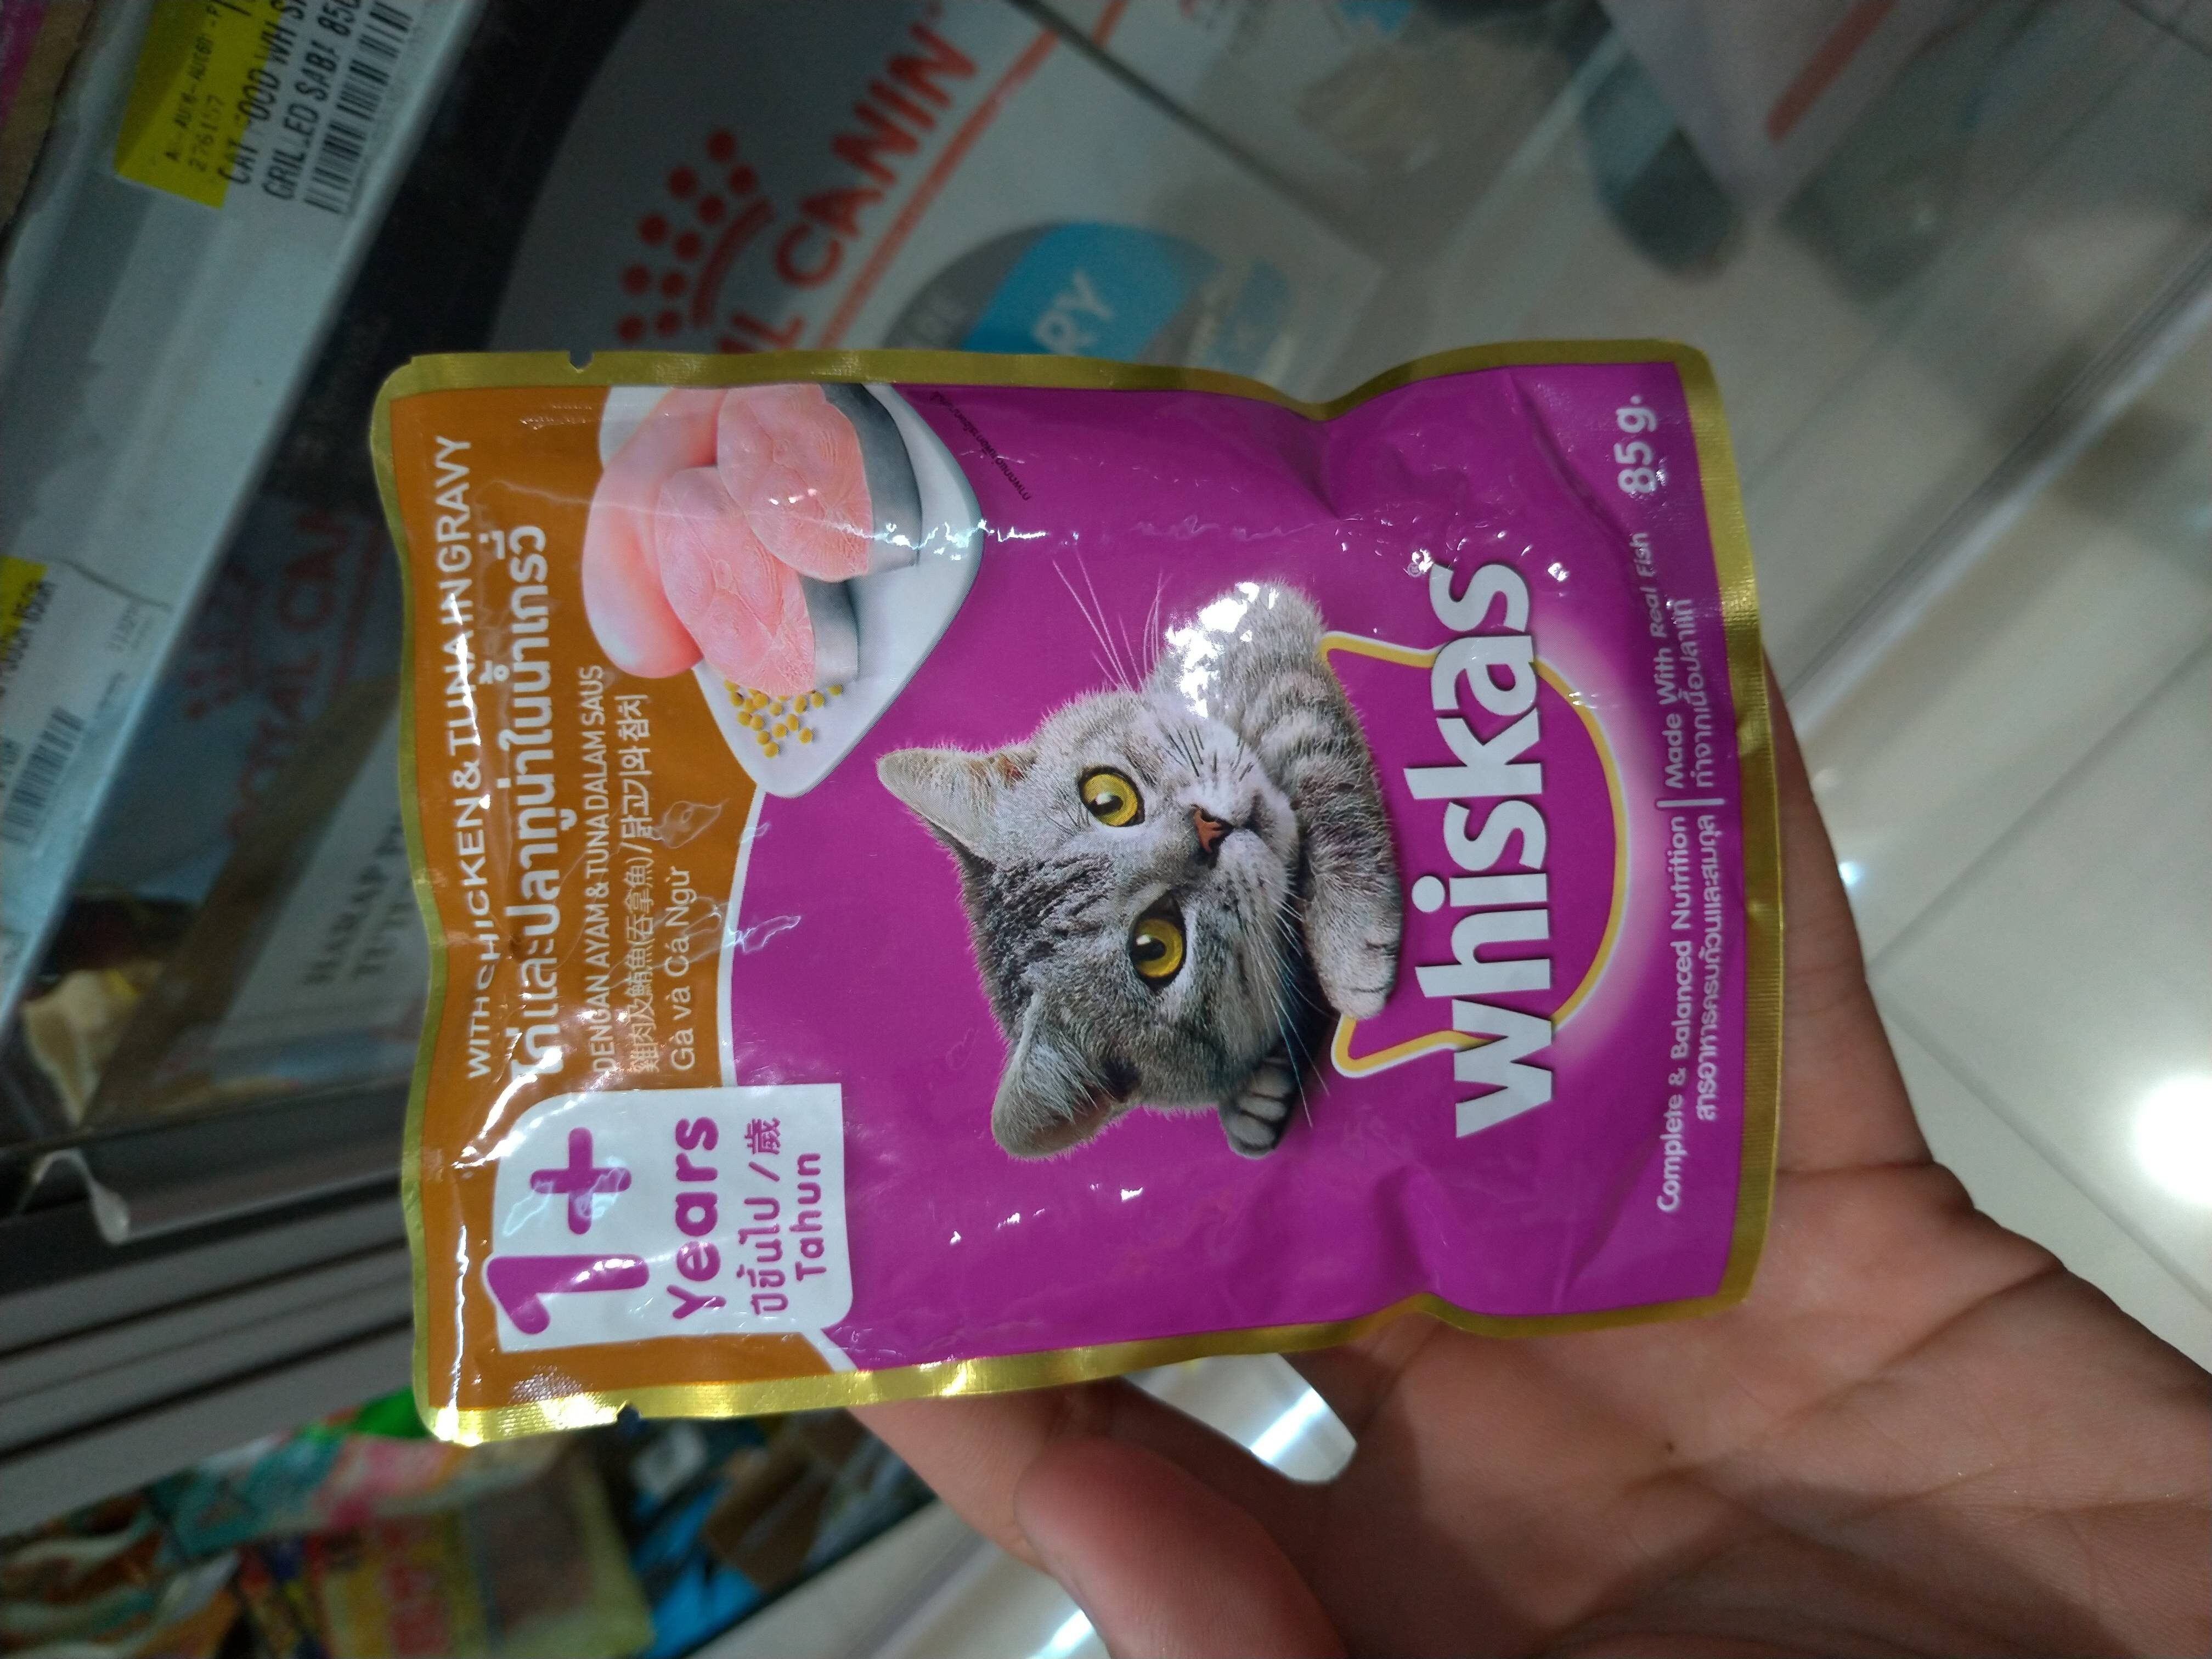 whiskas pouch with chicken and tuna ingravy - Produk - id